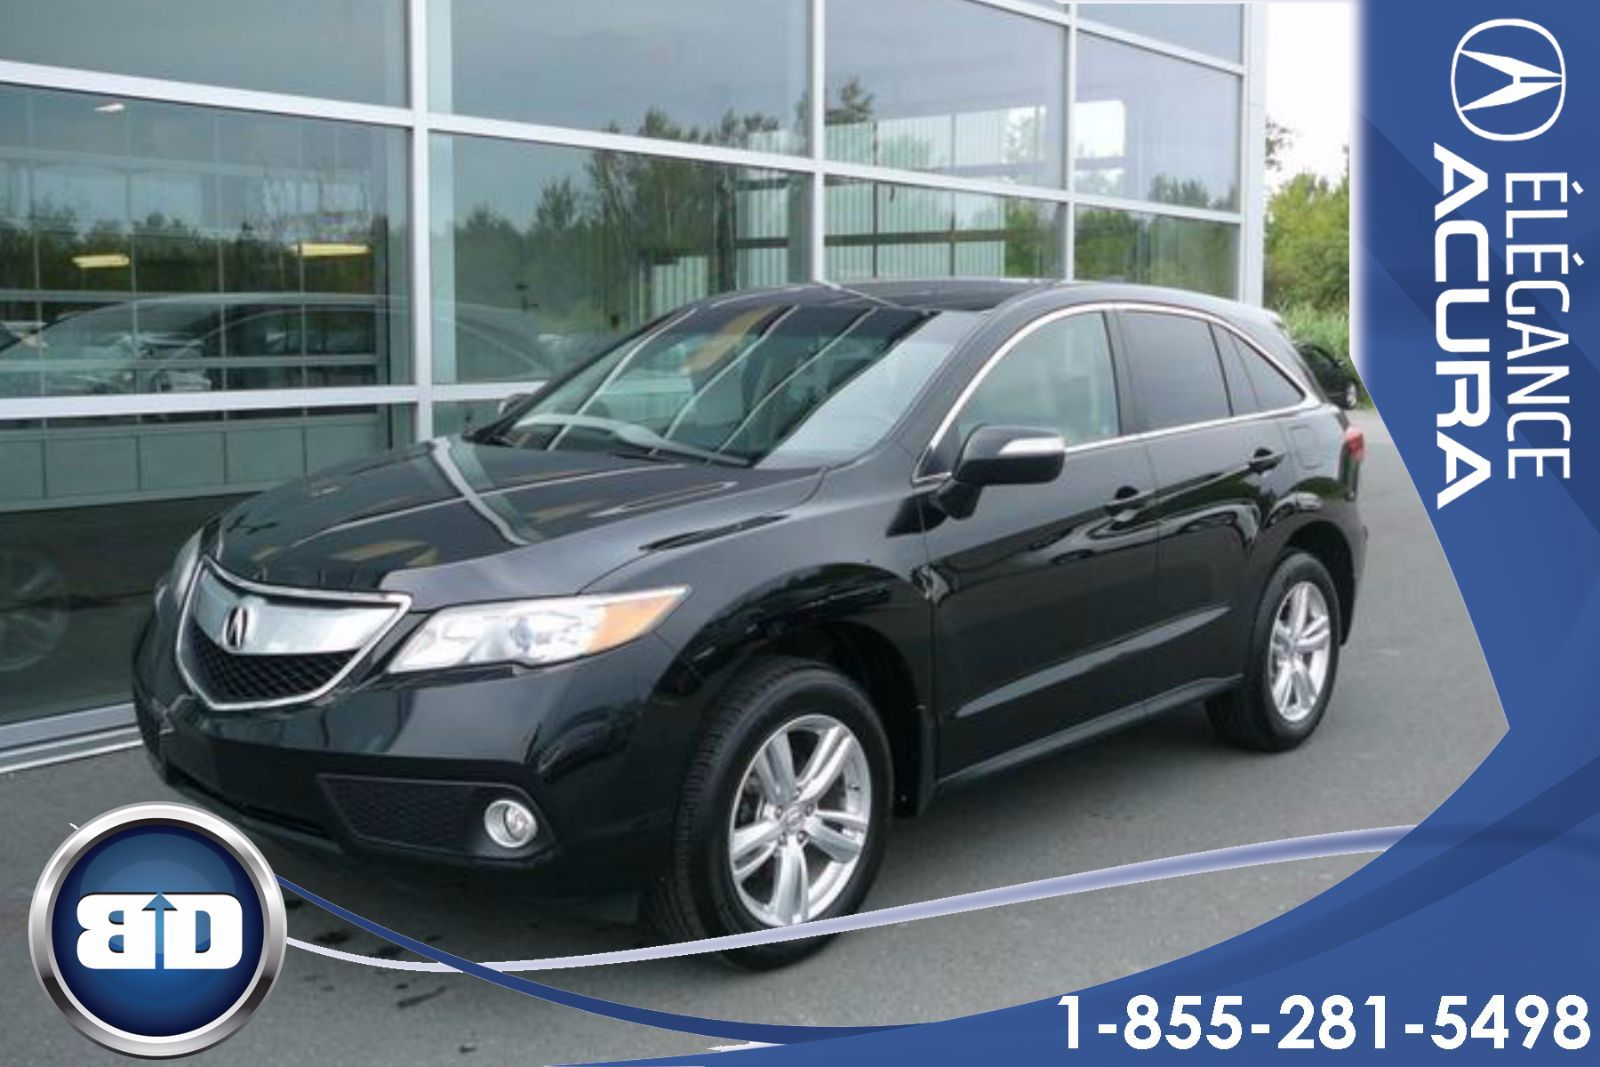 Used 2013 Acura RDX PREMIUM in Granby - Used inventory - Élégance Acura in Granby, Quebec